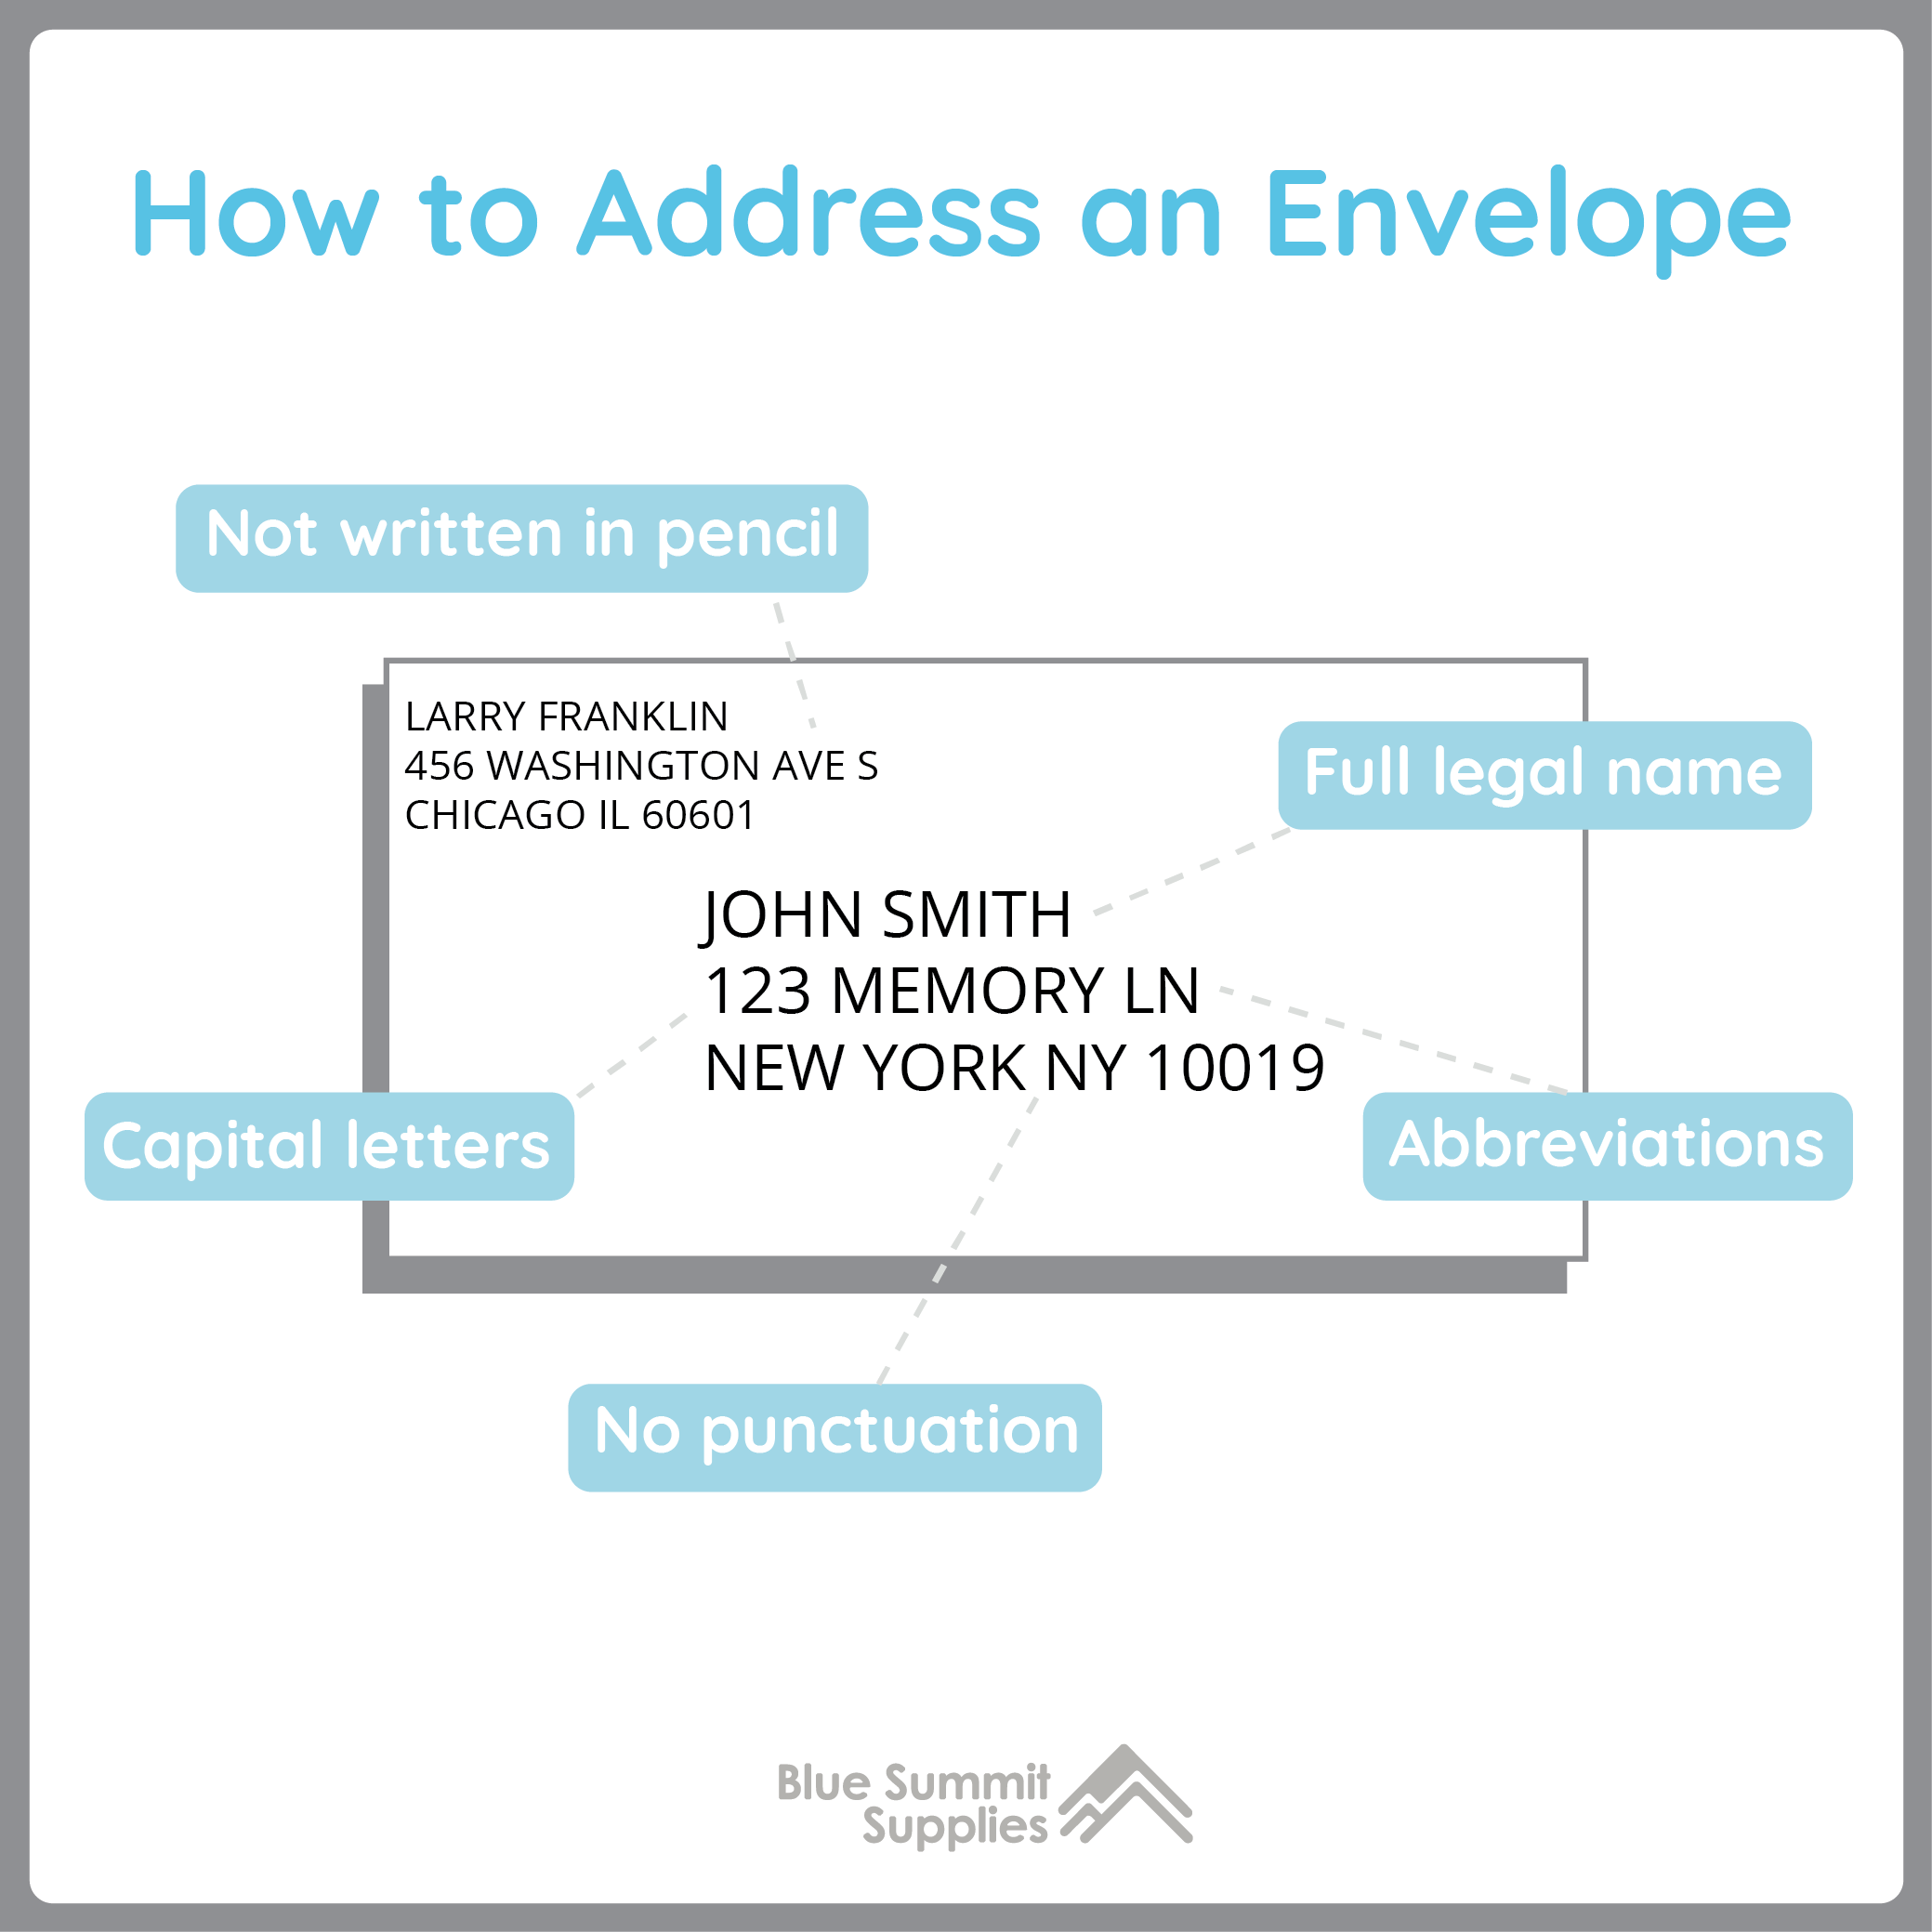 How To Write An Envelope Letter.How To Address An Envelope What To Write On An Envelope